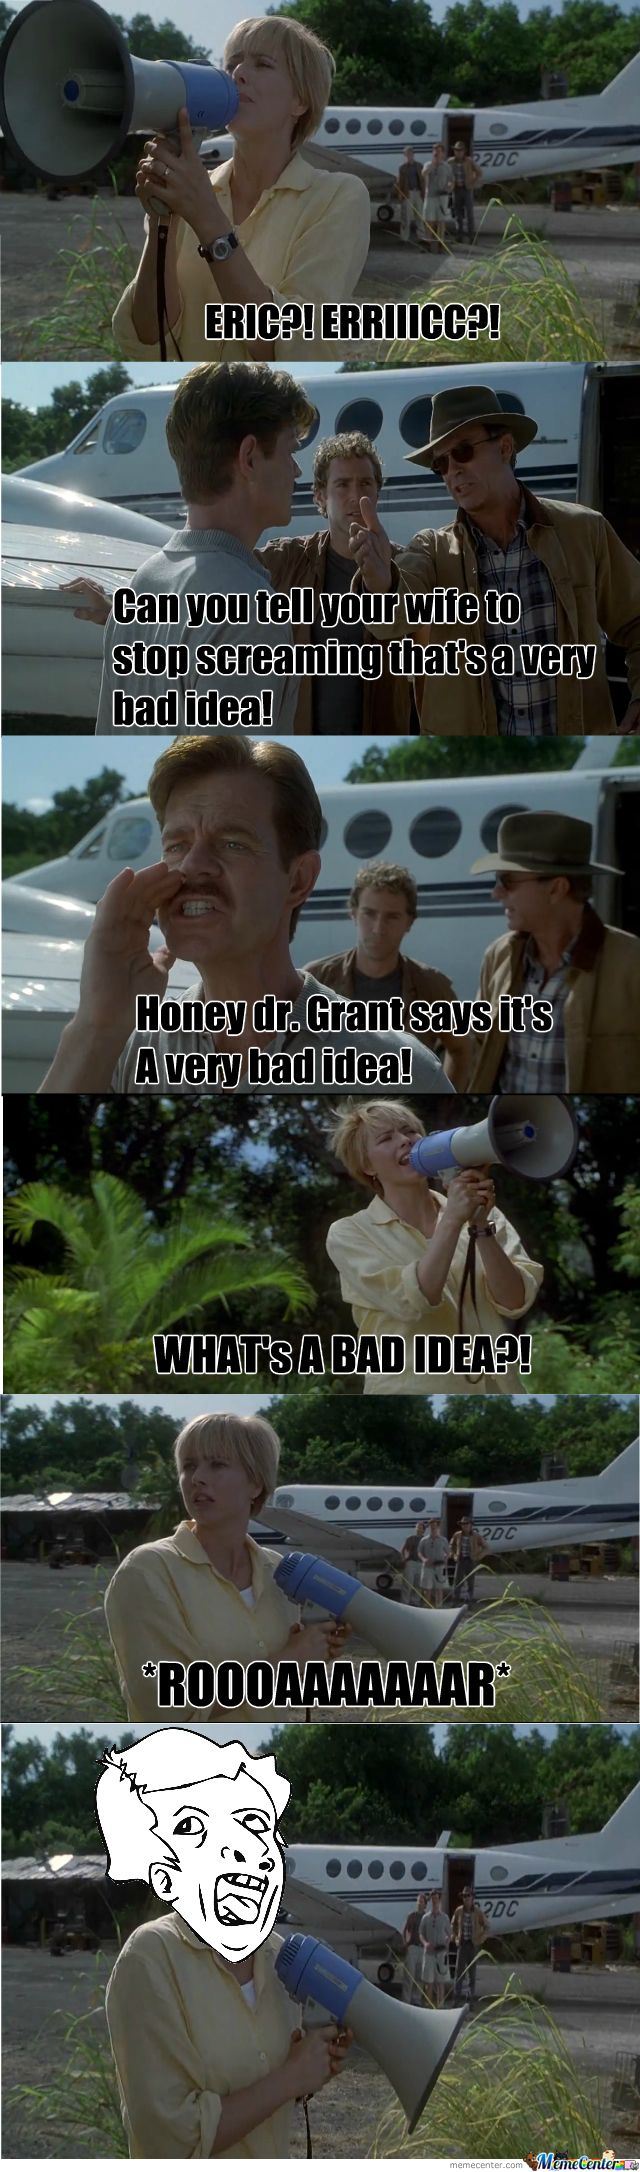 What's a bad idea?